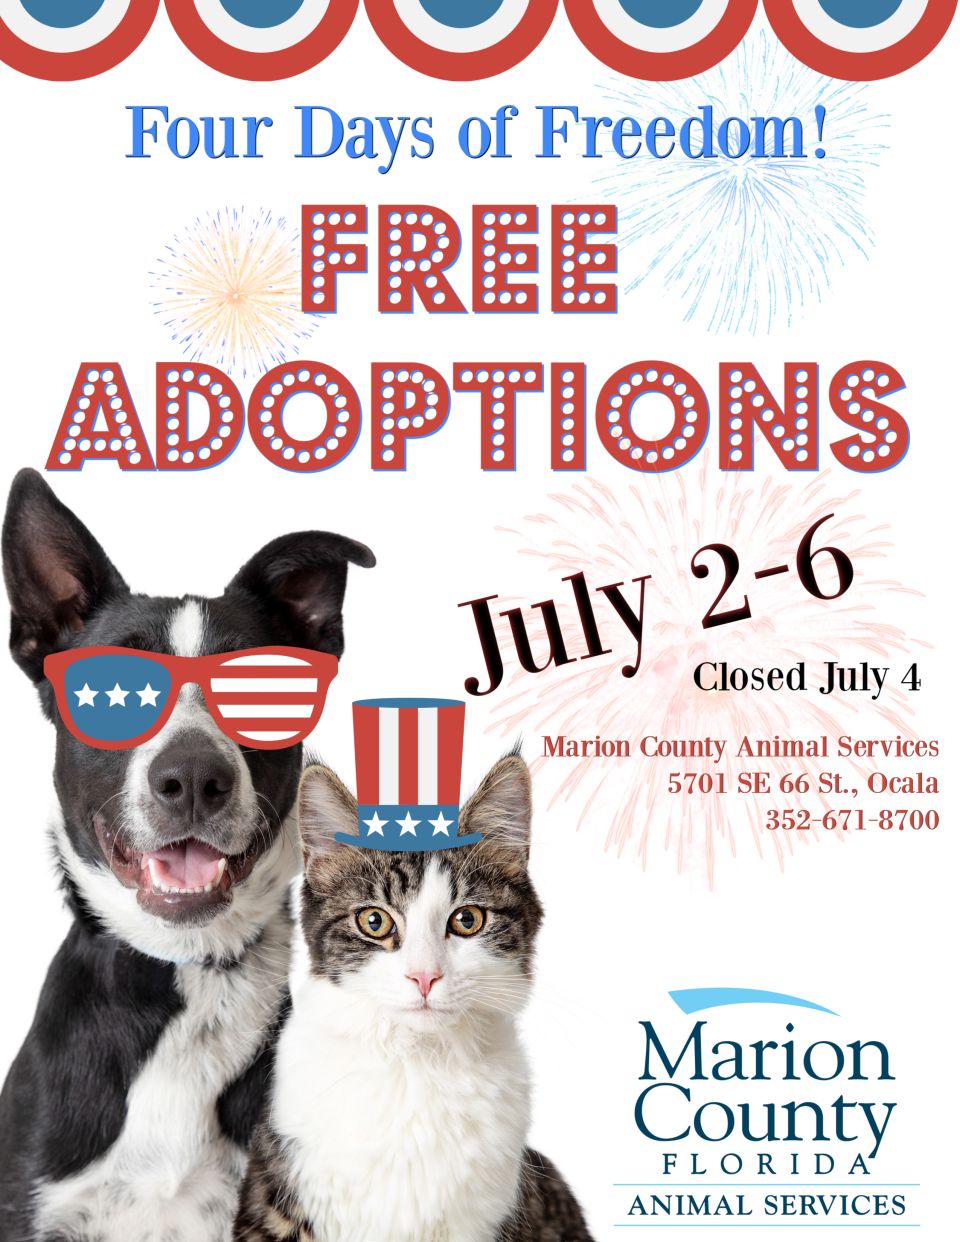 free adoption event July